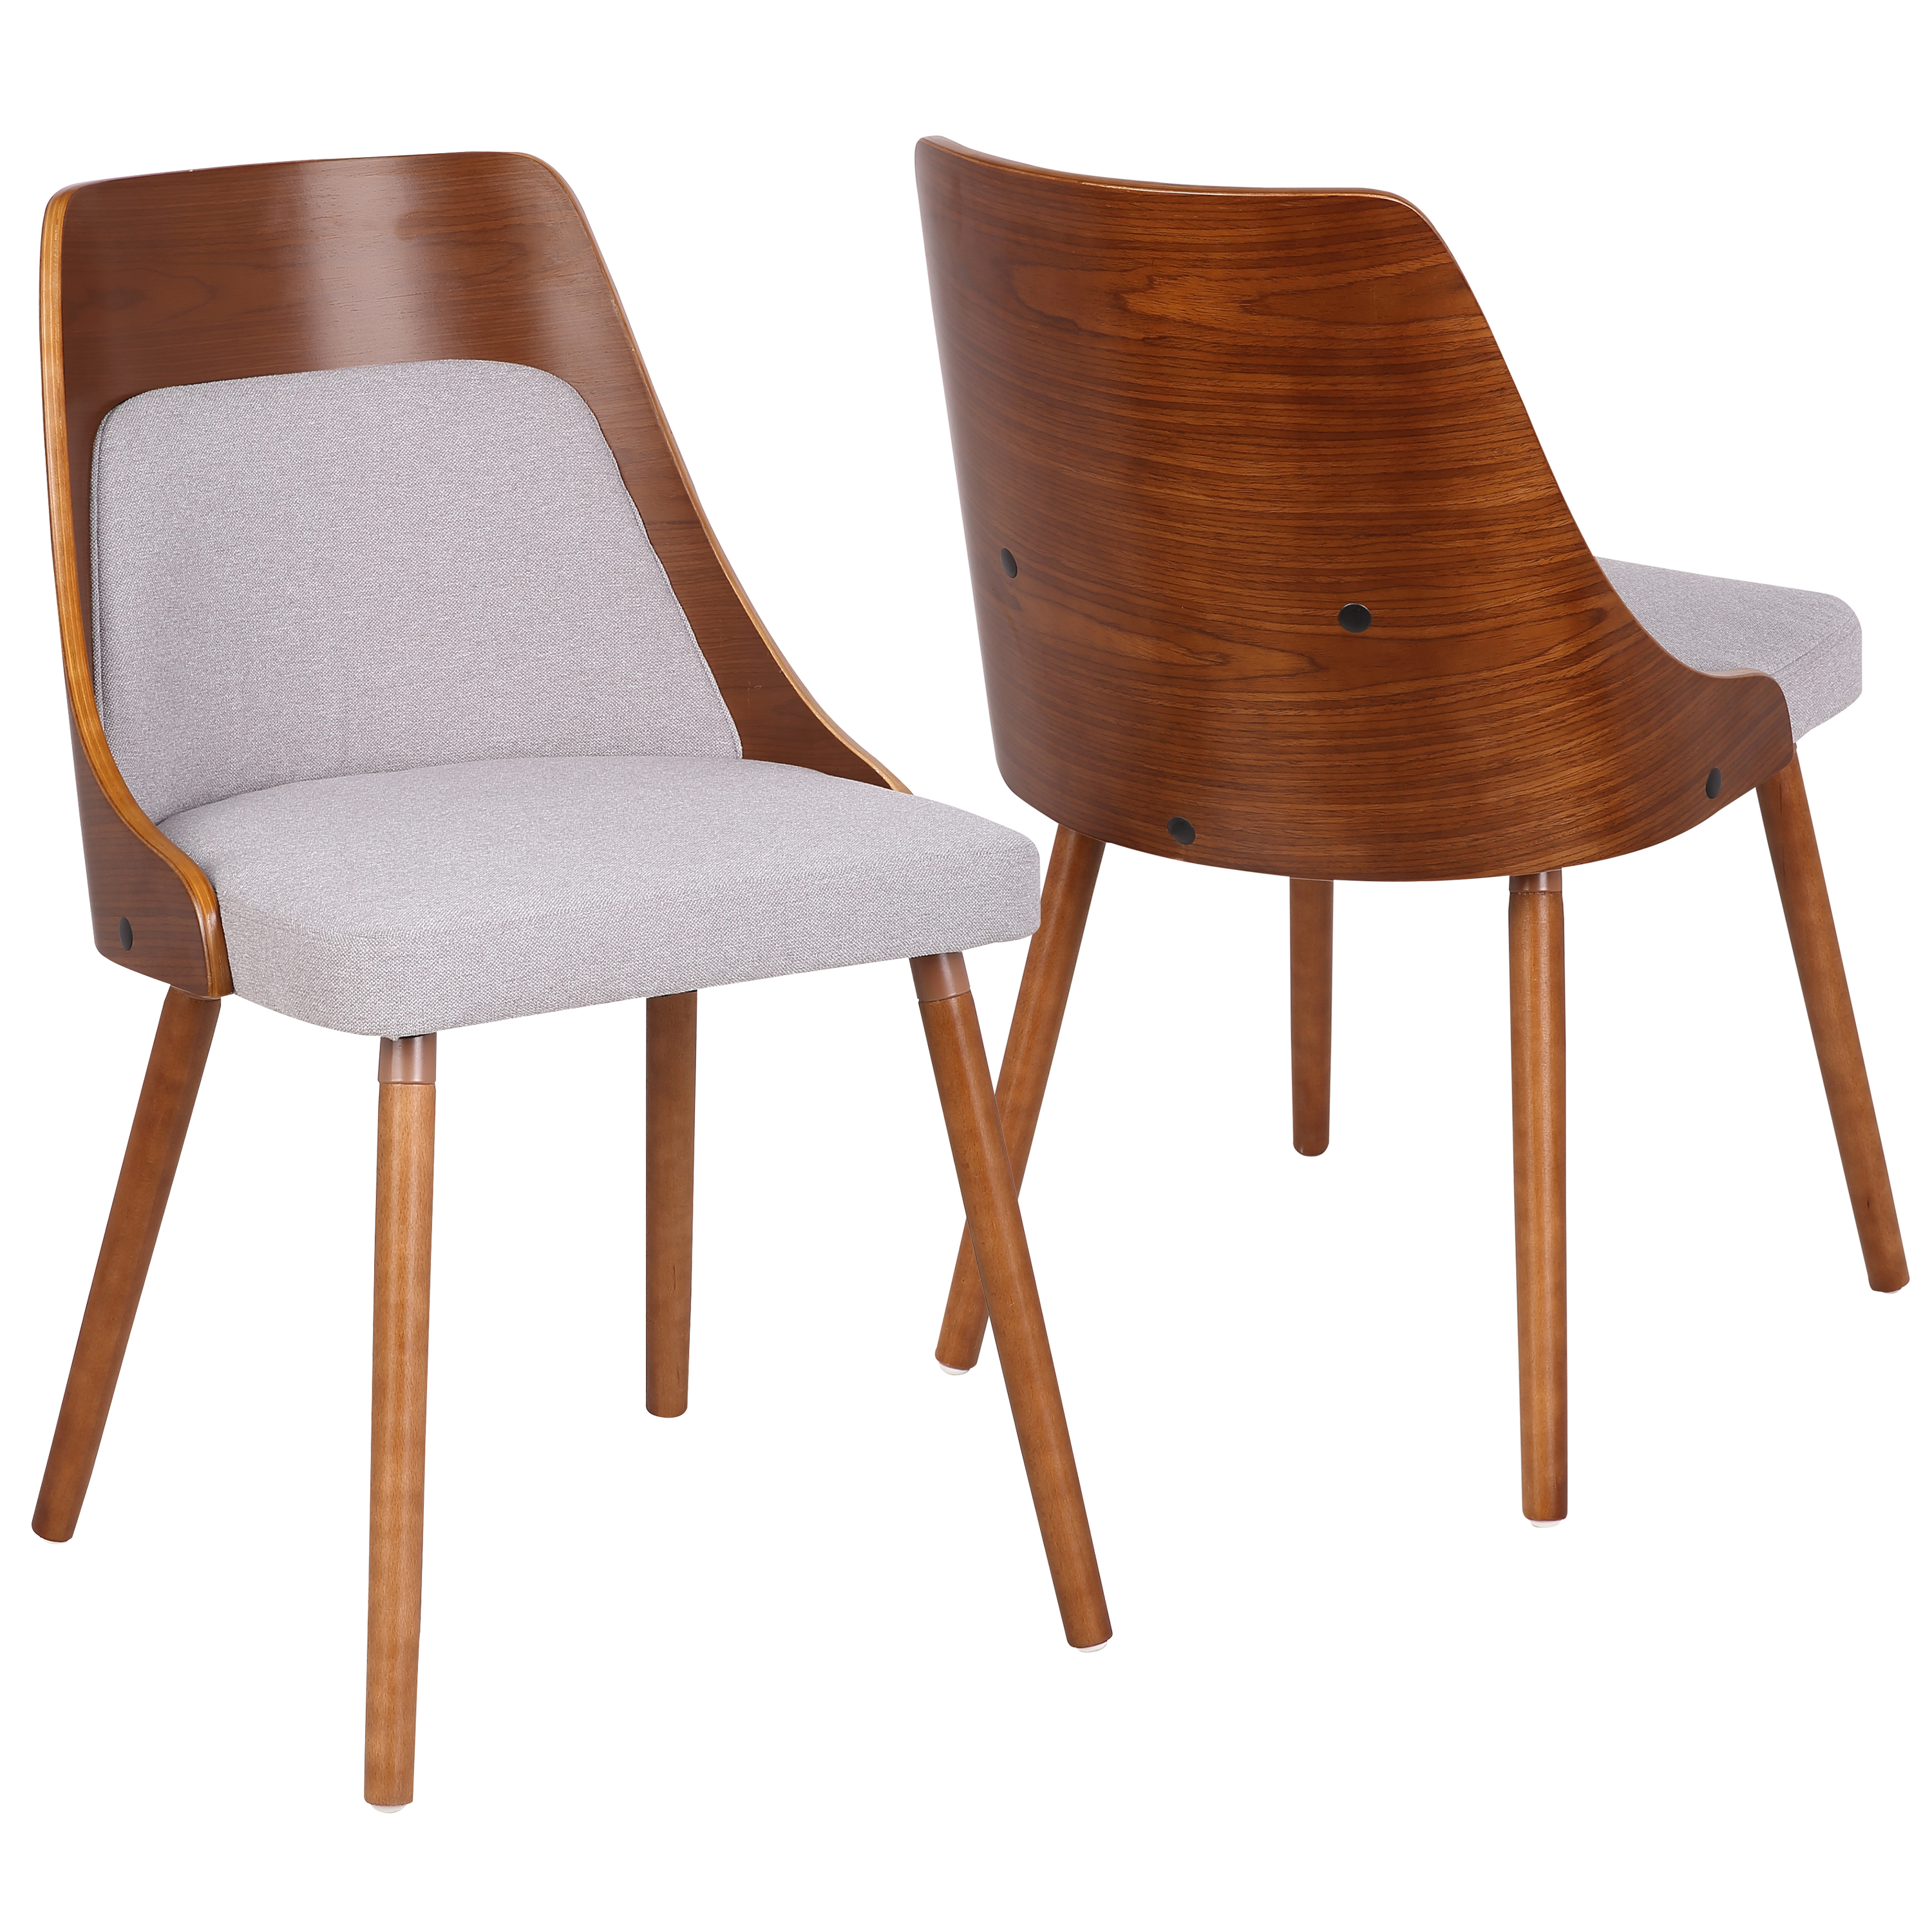 Anabelle Mid-Century Modern Dining Chair in Walnut and Grey Fabric by LumiSource